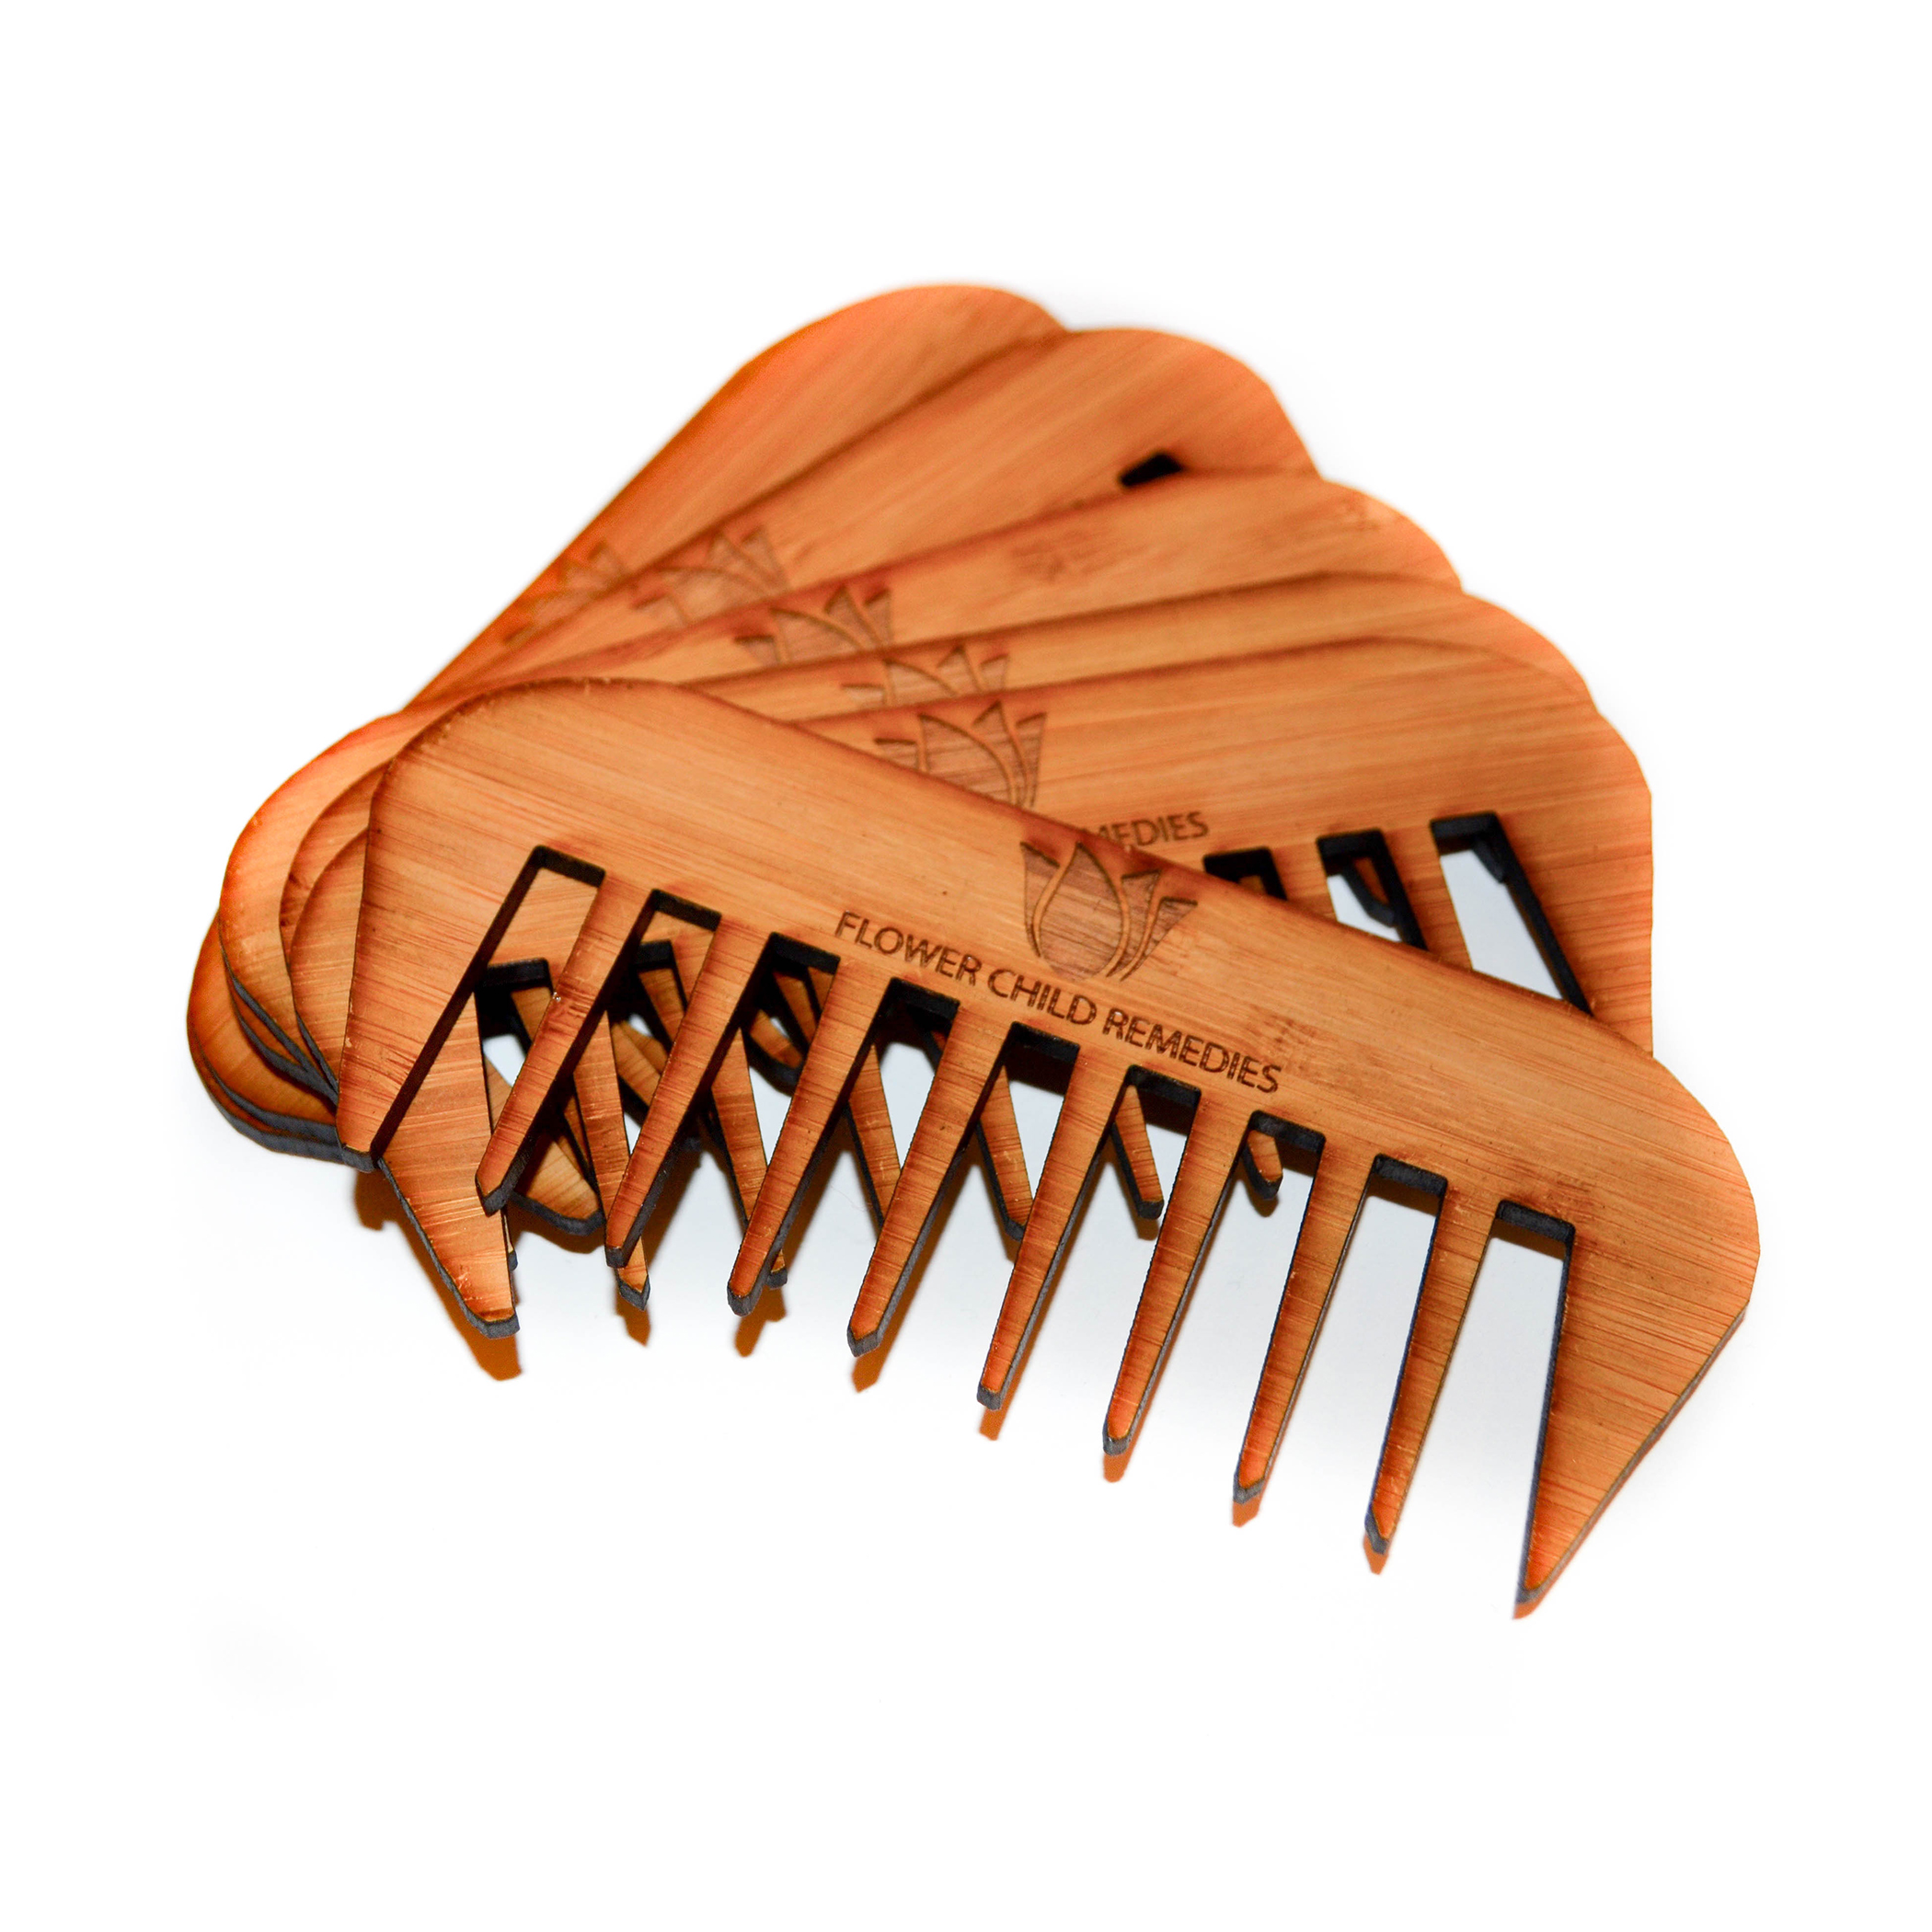 Natural Bamboo Wide Toothed Comb, Handcrafted with natural wood our Flower Child Remedies hair picks will detangle your hair and soothe your scalp.